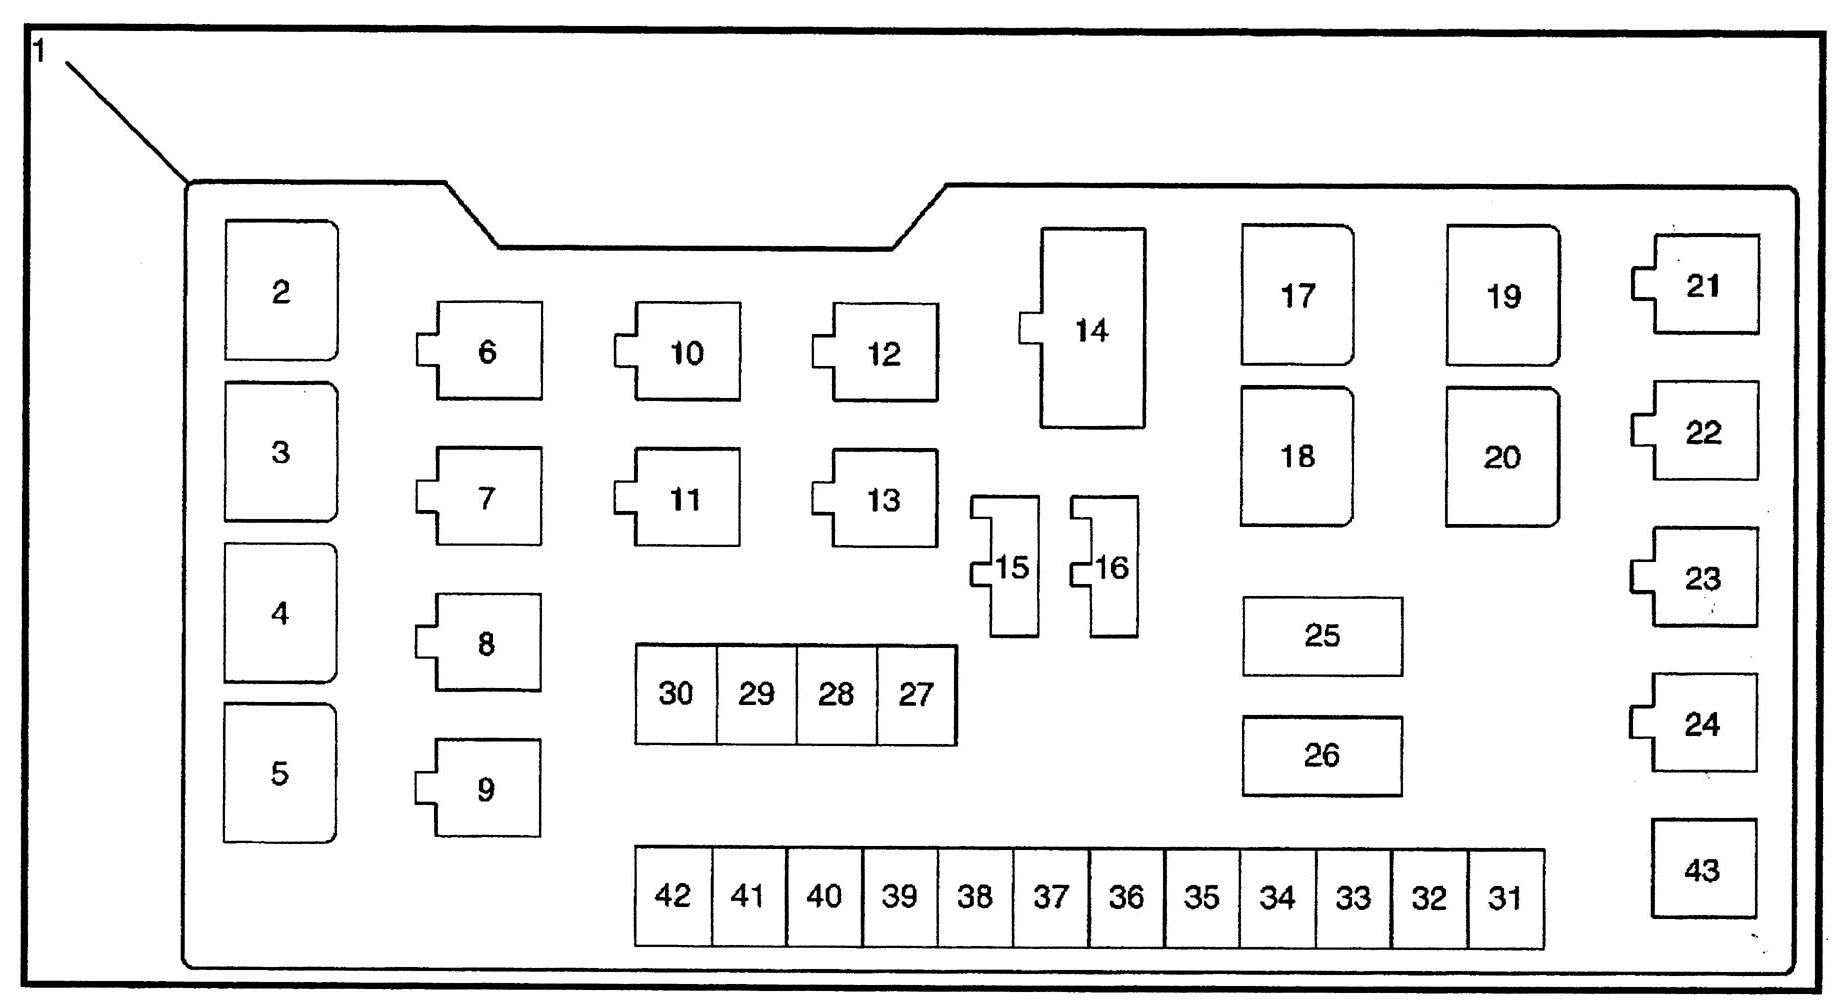 isuzu trooper (2000 - 2001) - fuse box diagram - auto genius 94 trooper fuse box diagram